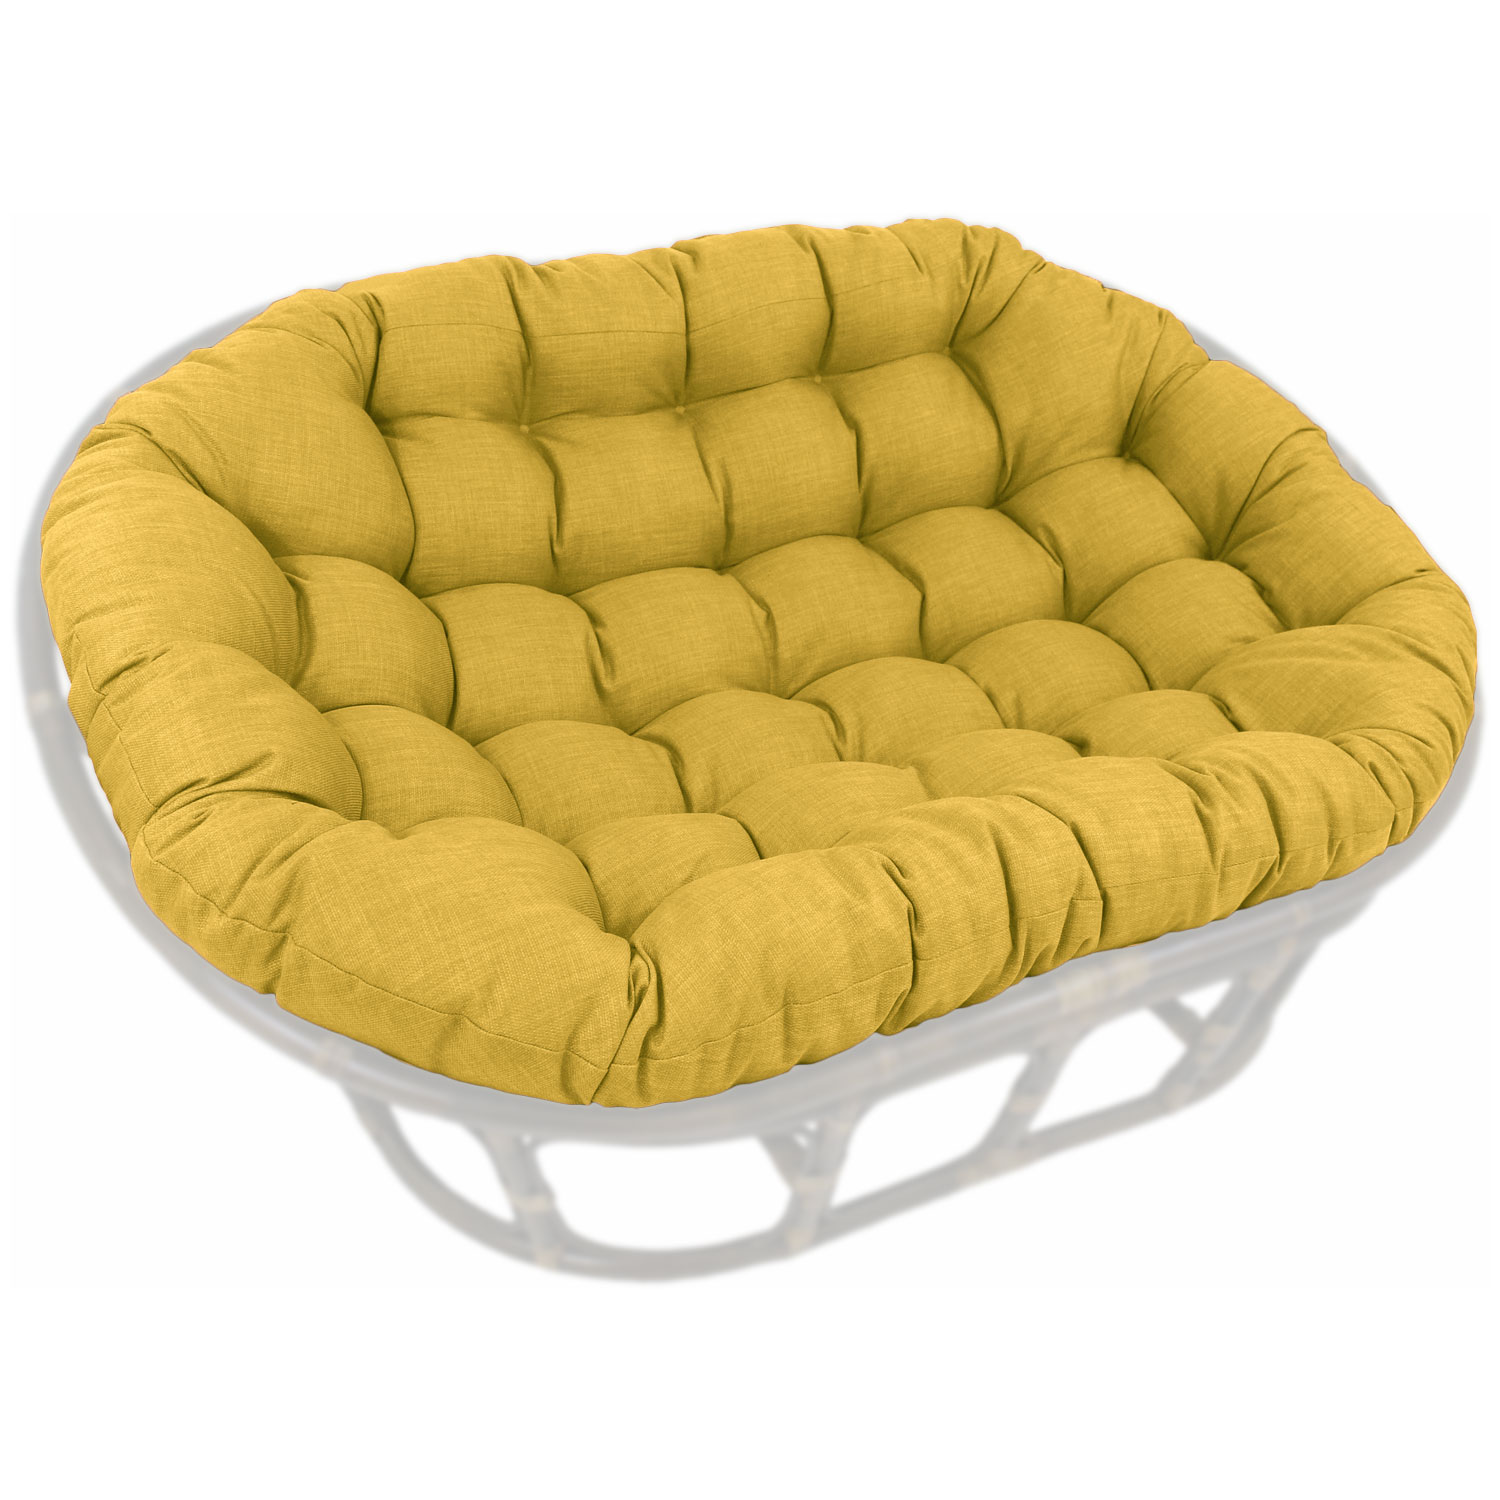 60u0027u0027 X 48u0027u0027 Outdoor Fabric Tufted Double Papasan Cushion   BLZ  ...